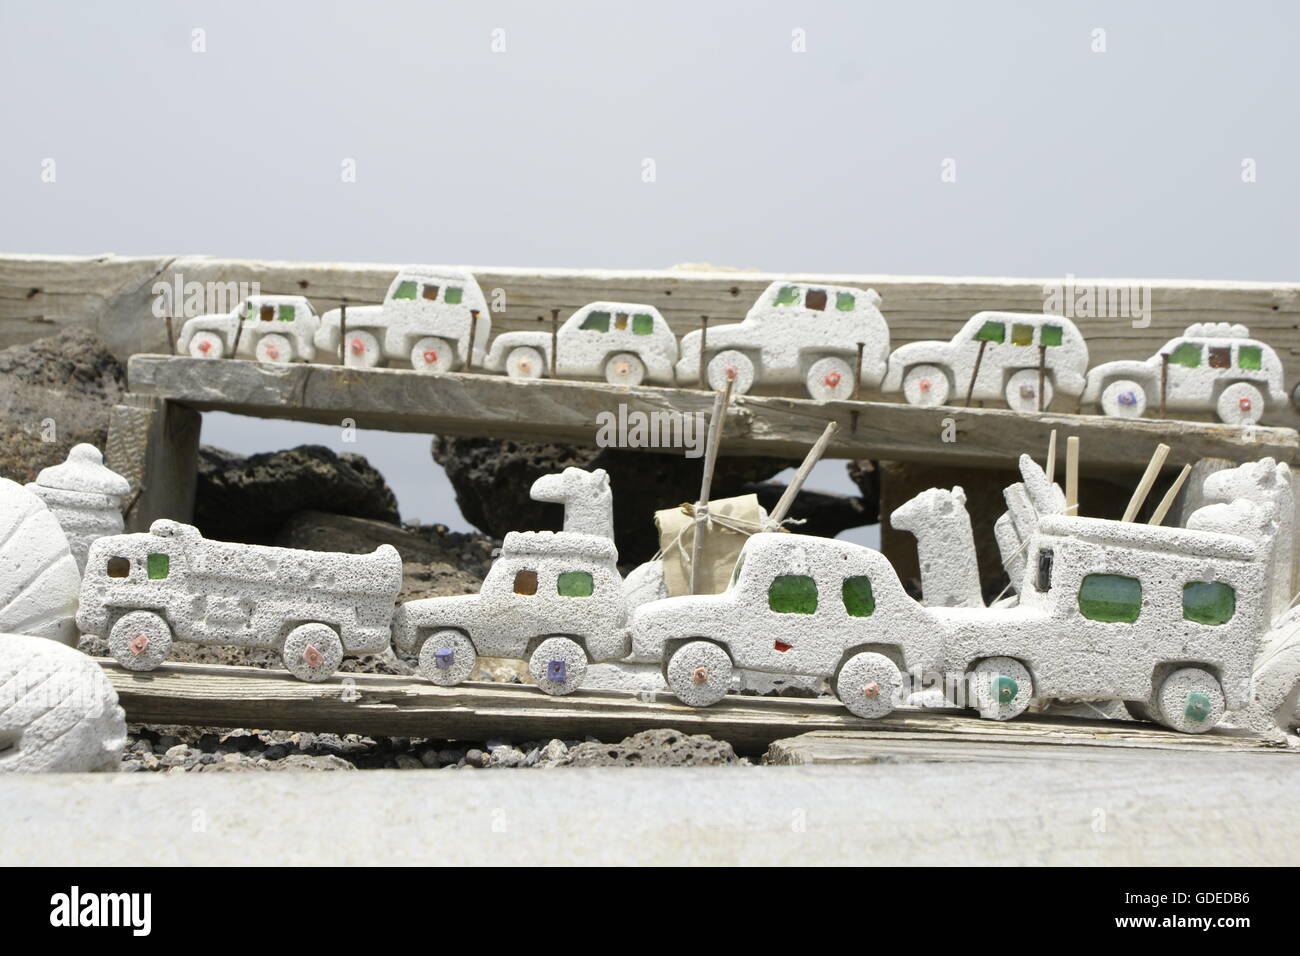 Traffic congestion of Local Handicrafted Pumice Stone toys, Djibouti, Horn of Africa - Stock Image